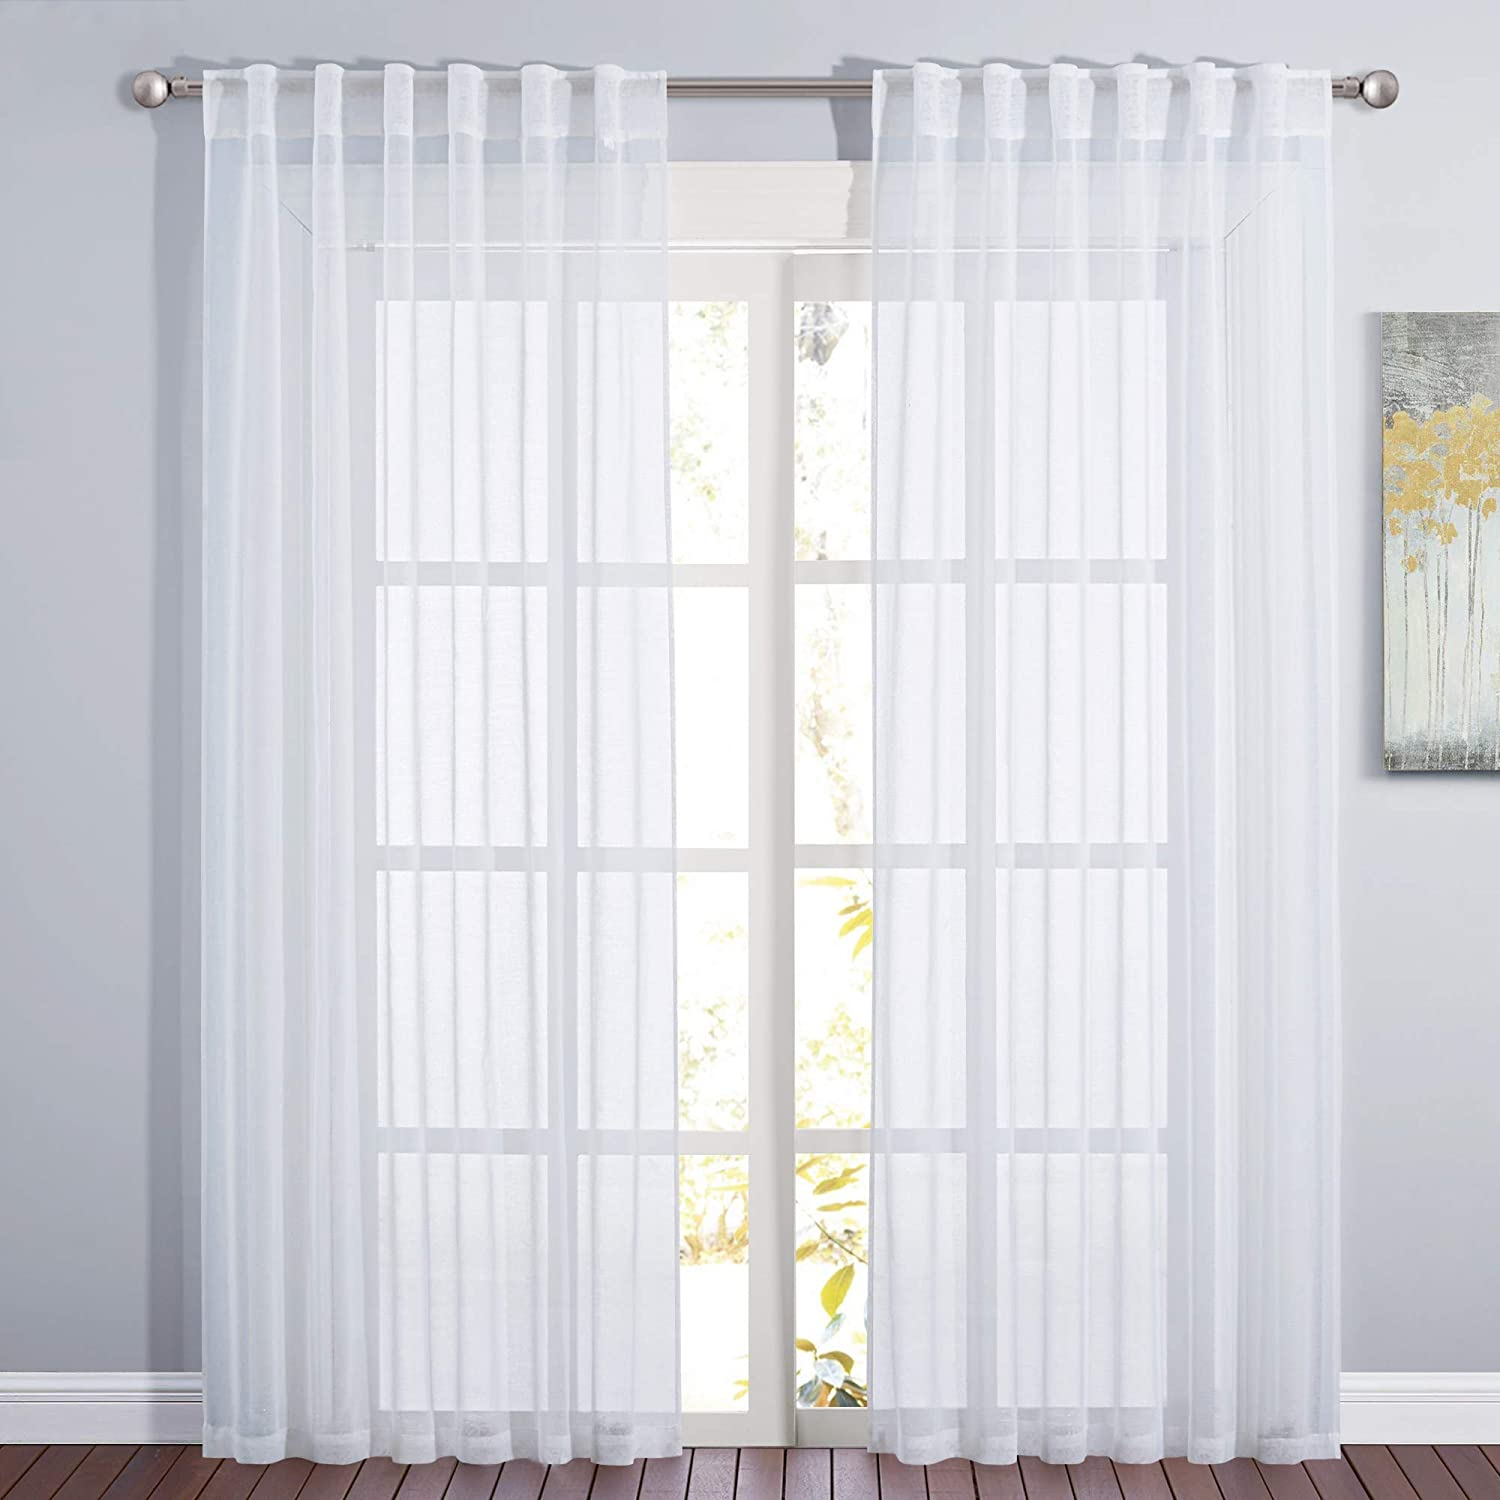 Amazon Com Pony Dance Window Curtains For Bedroom Linen Look White Natural Sheer Curtain Drapes Home Decor Elegant For Living Room 55 X 84 Inches 2 Panels Kitchen Dining